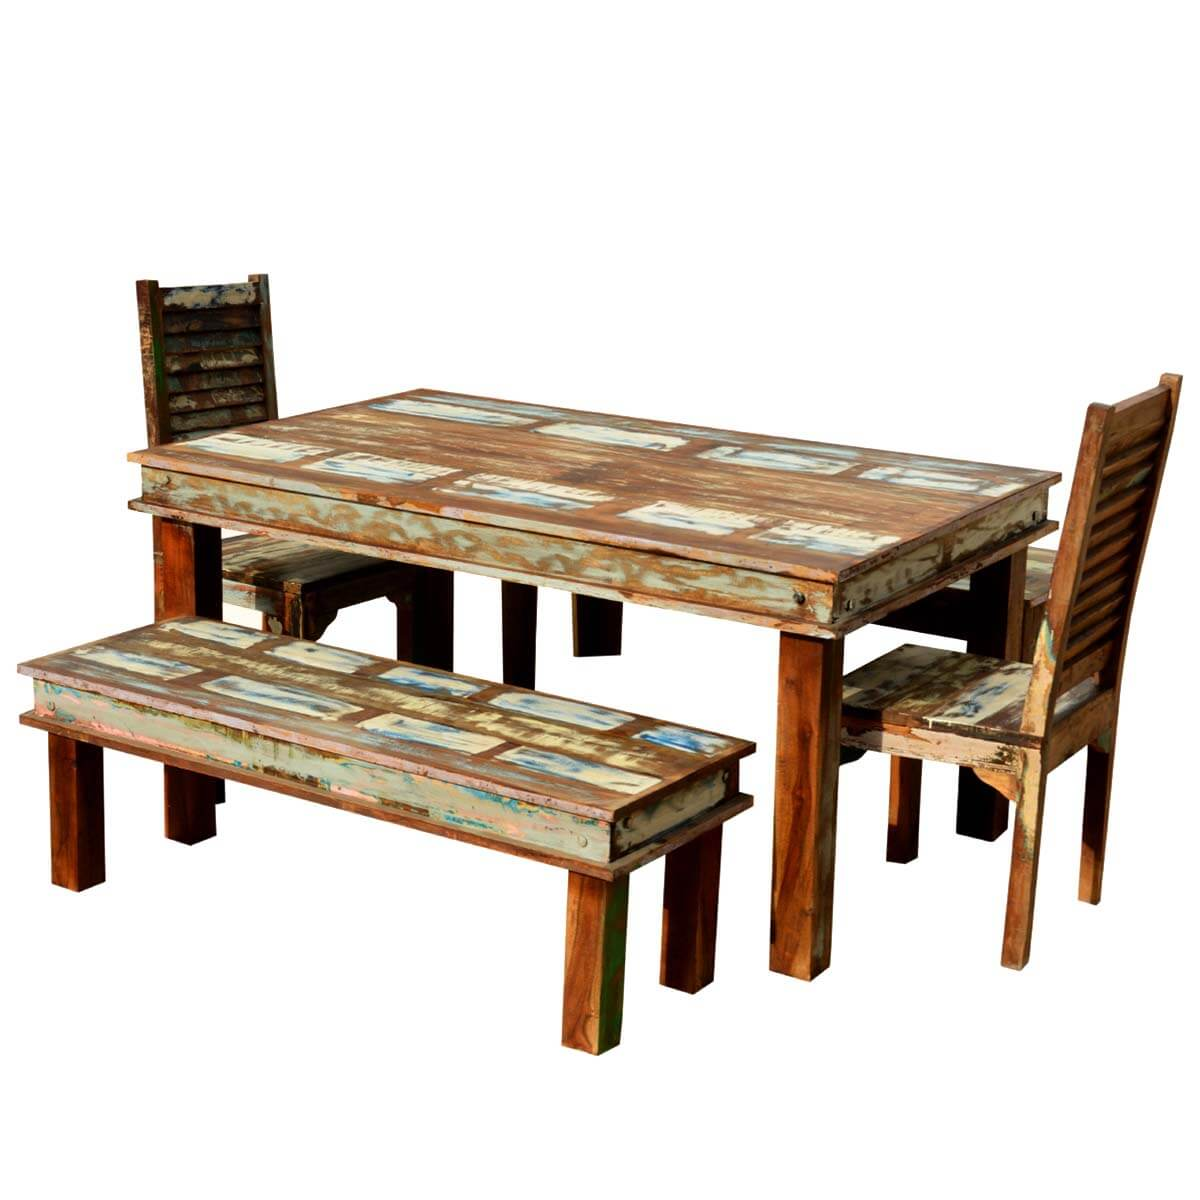 Reclaimed Wood Dining Chairs ~ Sierra reclaimed wood furniture dining table with chairs